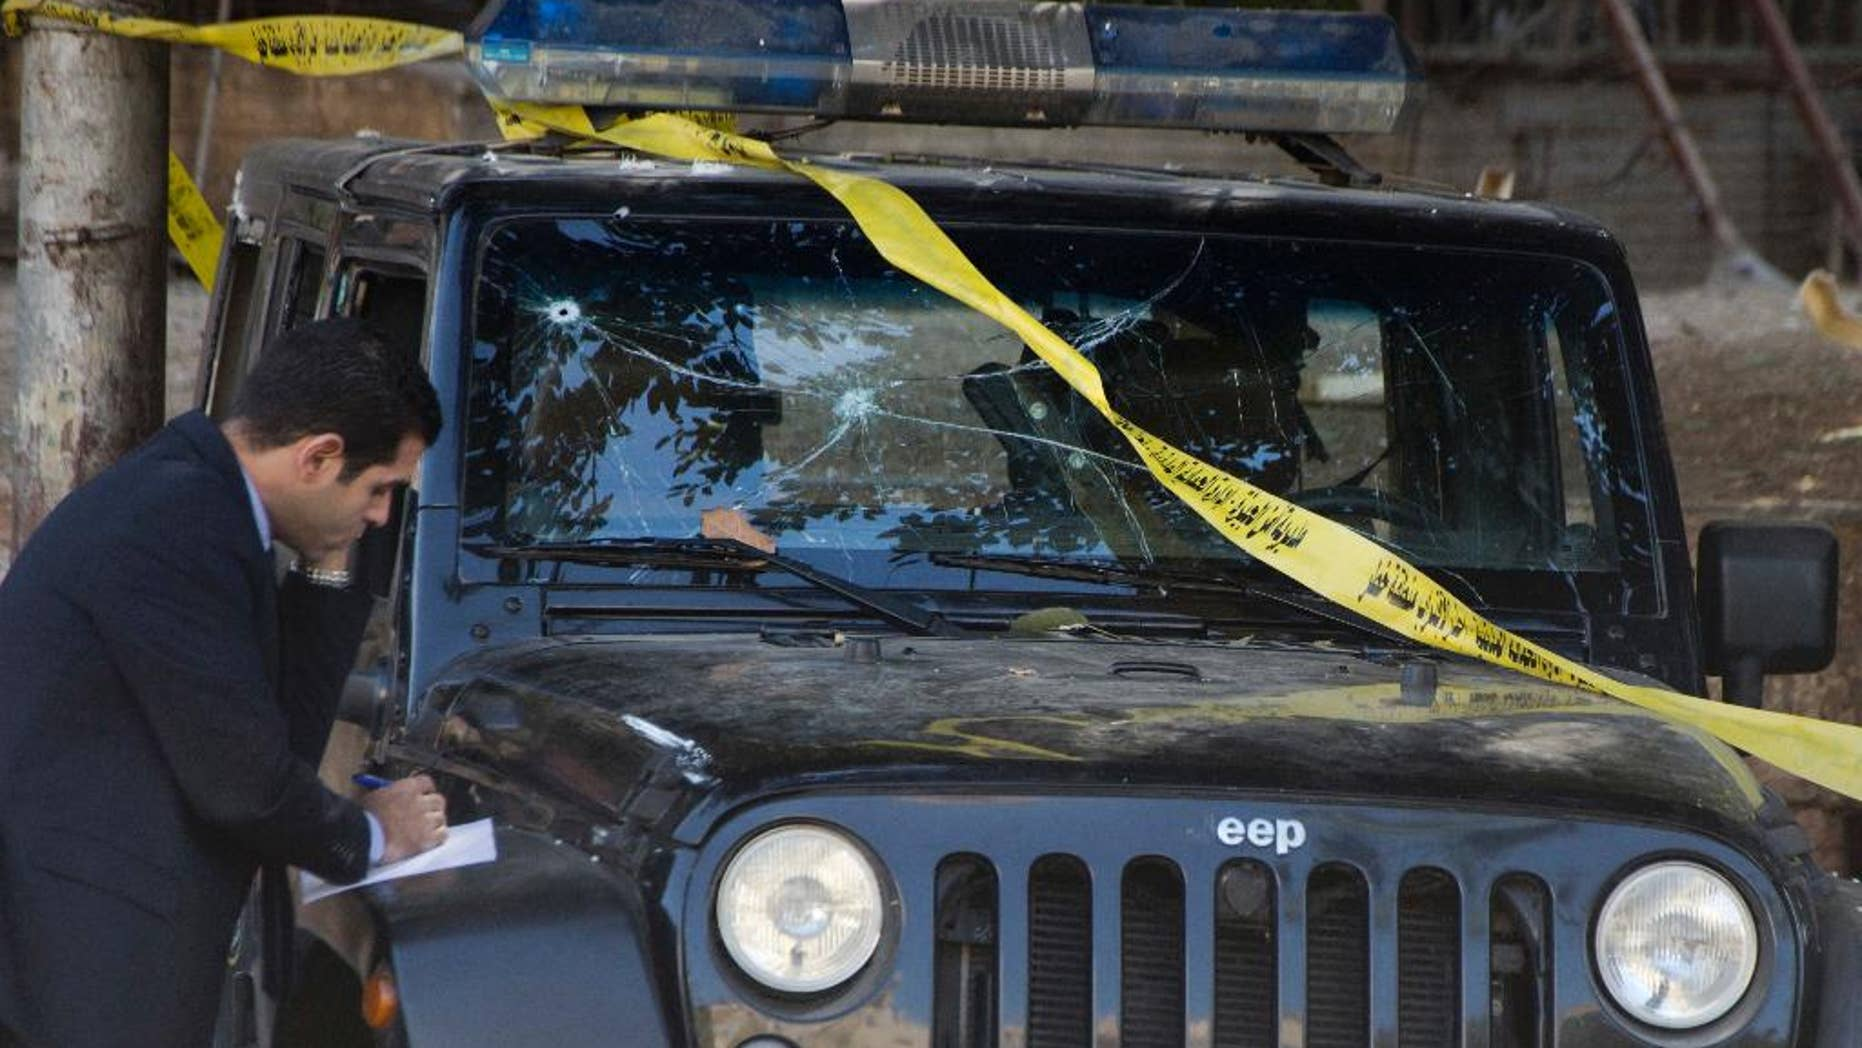 A damaged police vehicle after the explosion.